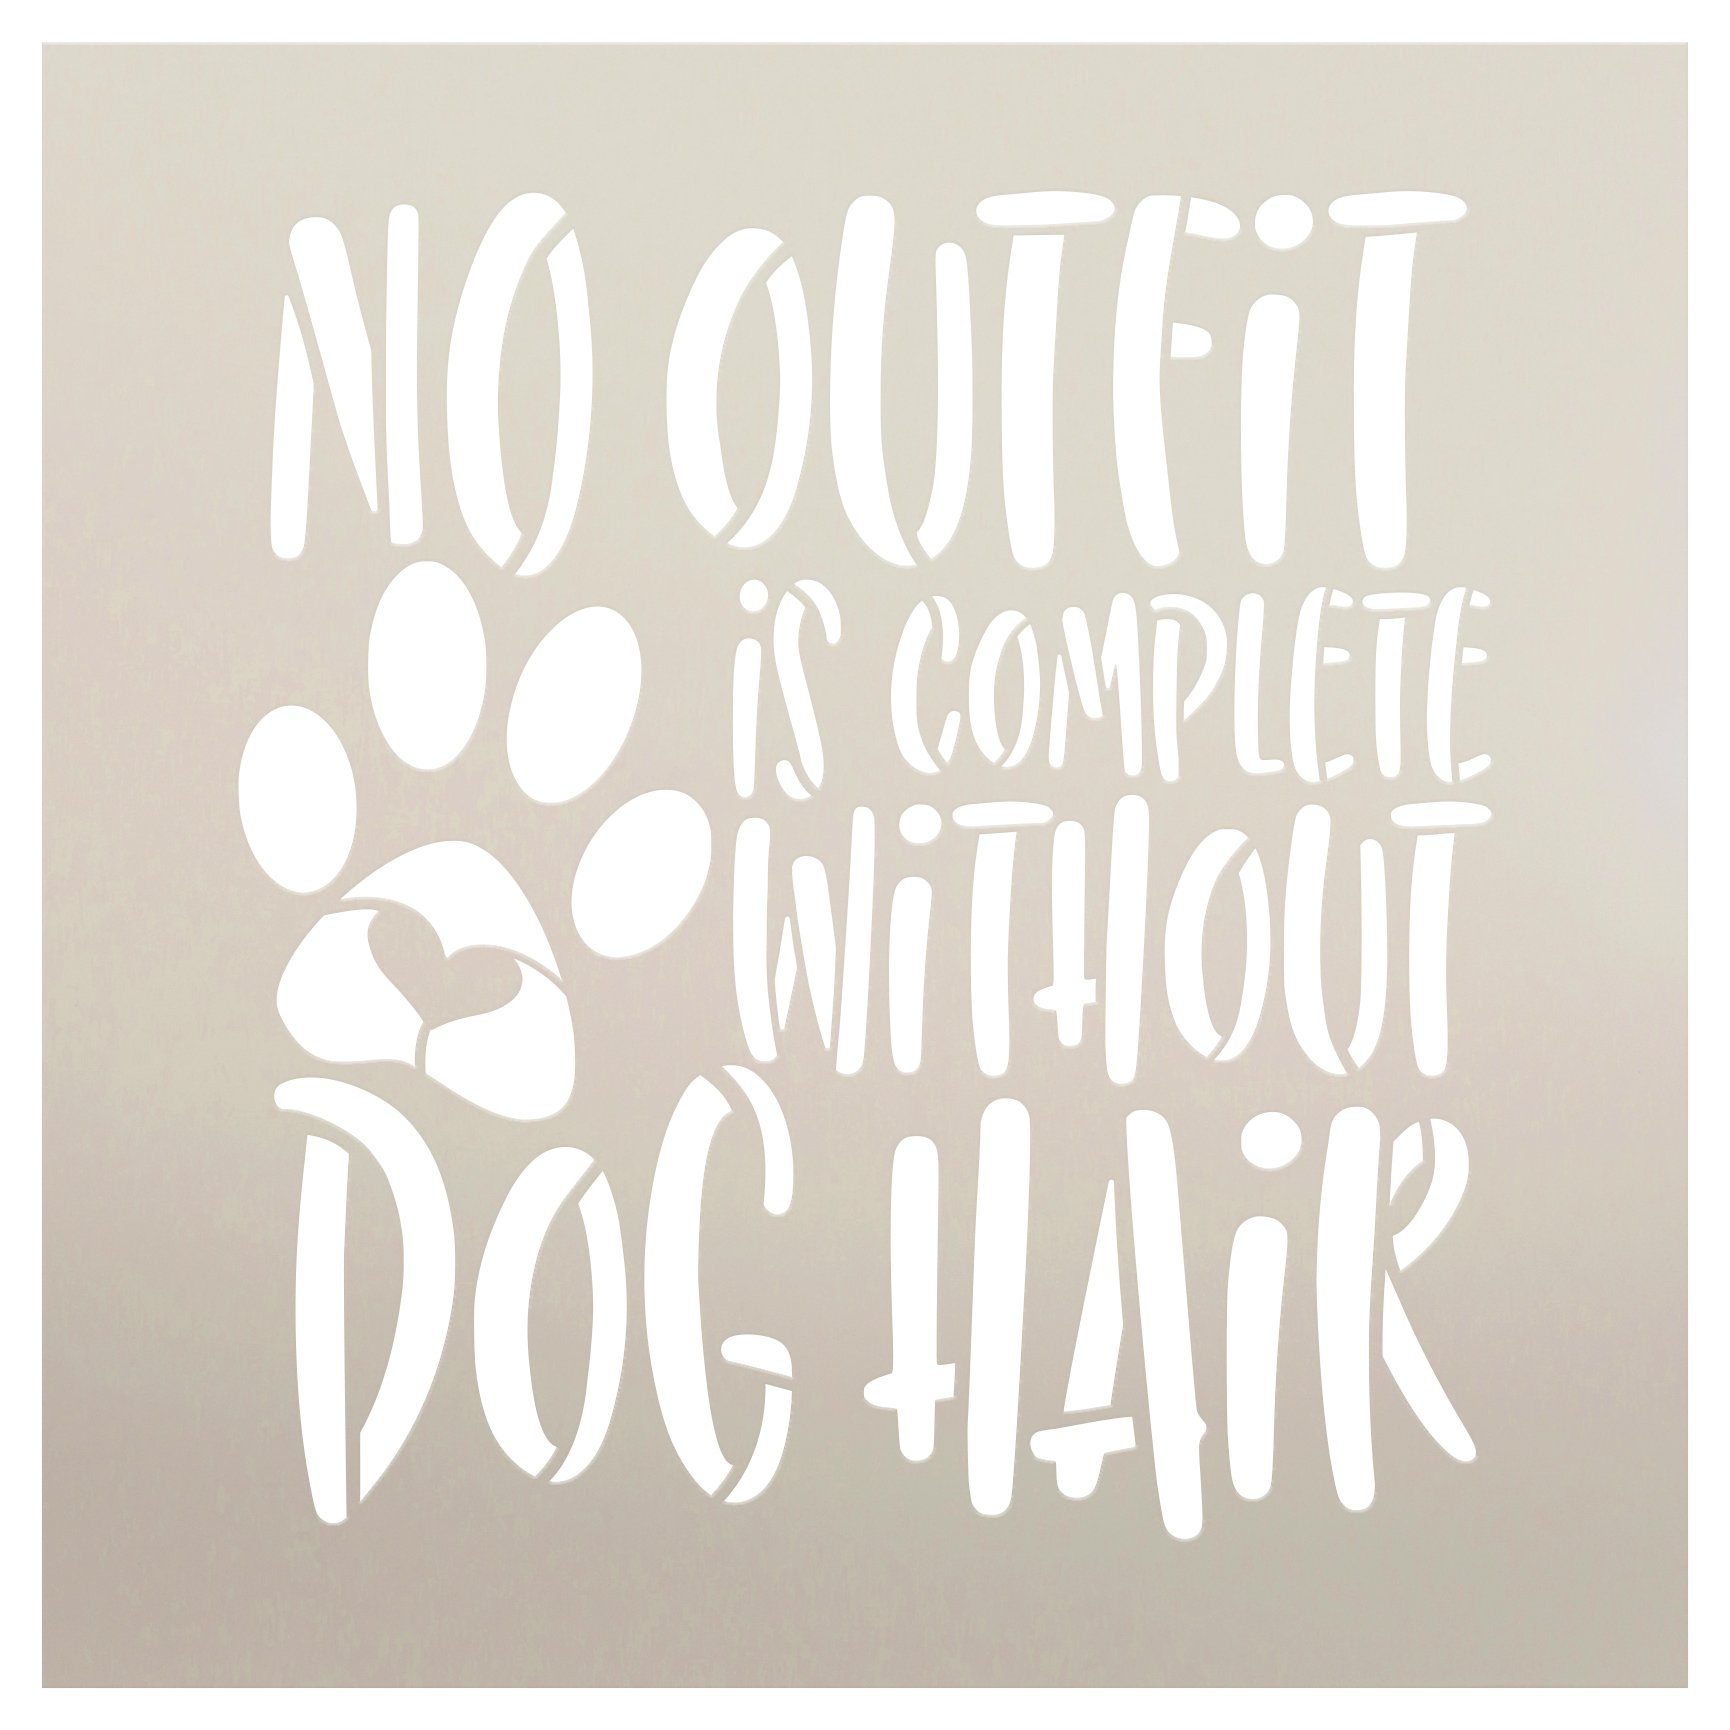 No Outfit Complete Without Dog Hair Stencil by StudioR12 | Craft DIY Pet Pawprint Home Decor | Paint Animal Lover Wood Sign | Reusable Mylar Template | Select Size